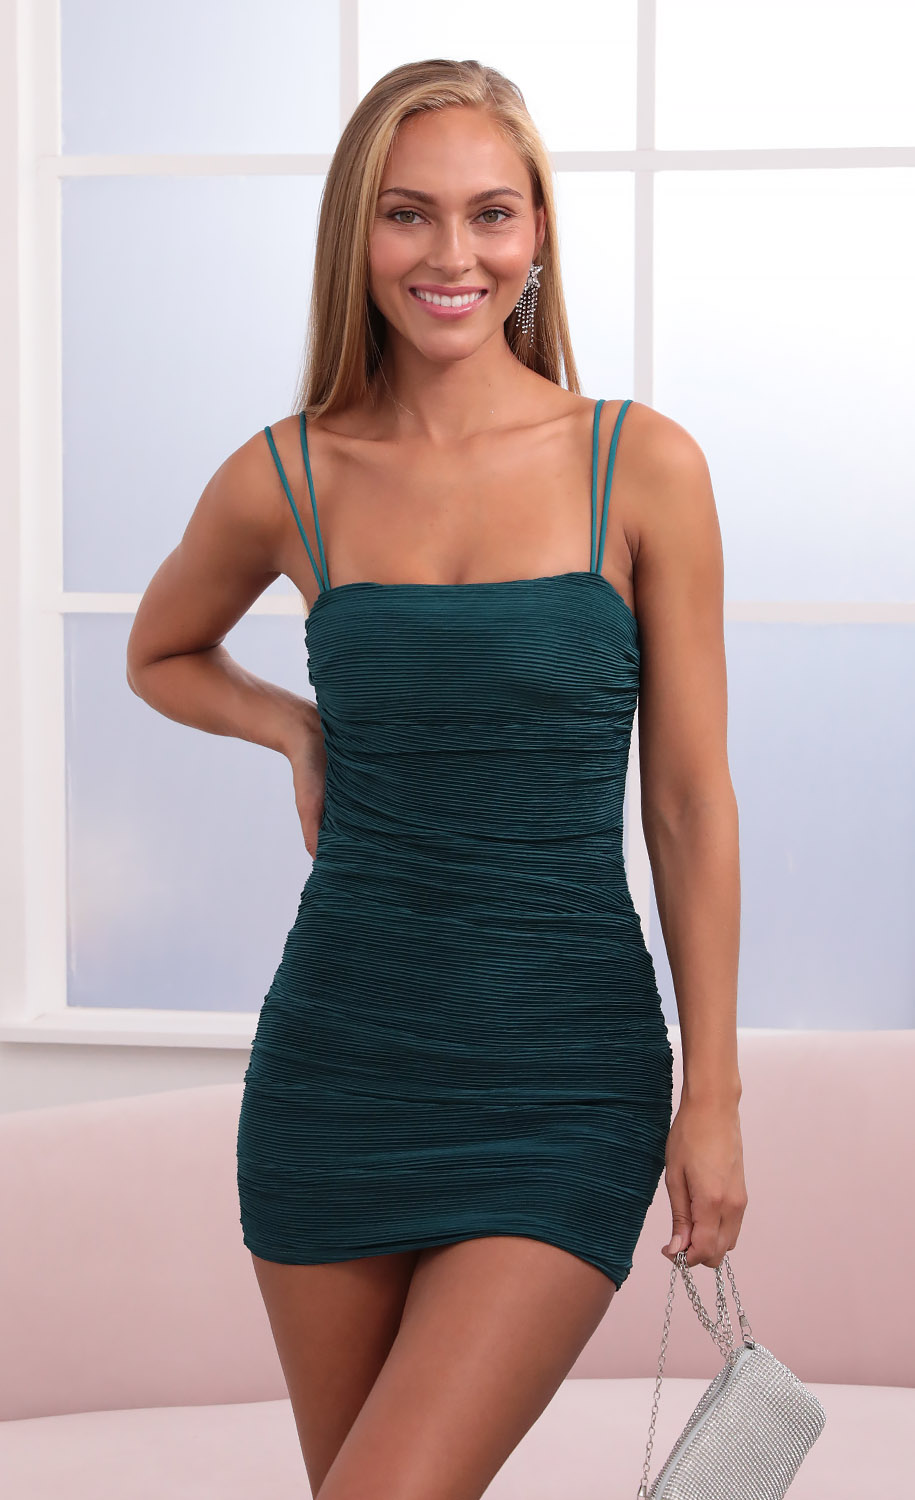 Arabelle Pleated Body Con Dress in Turquoise